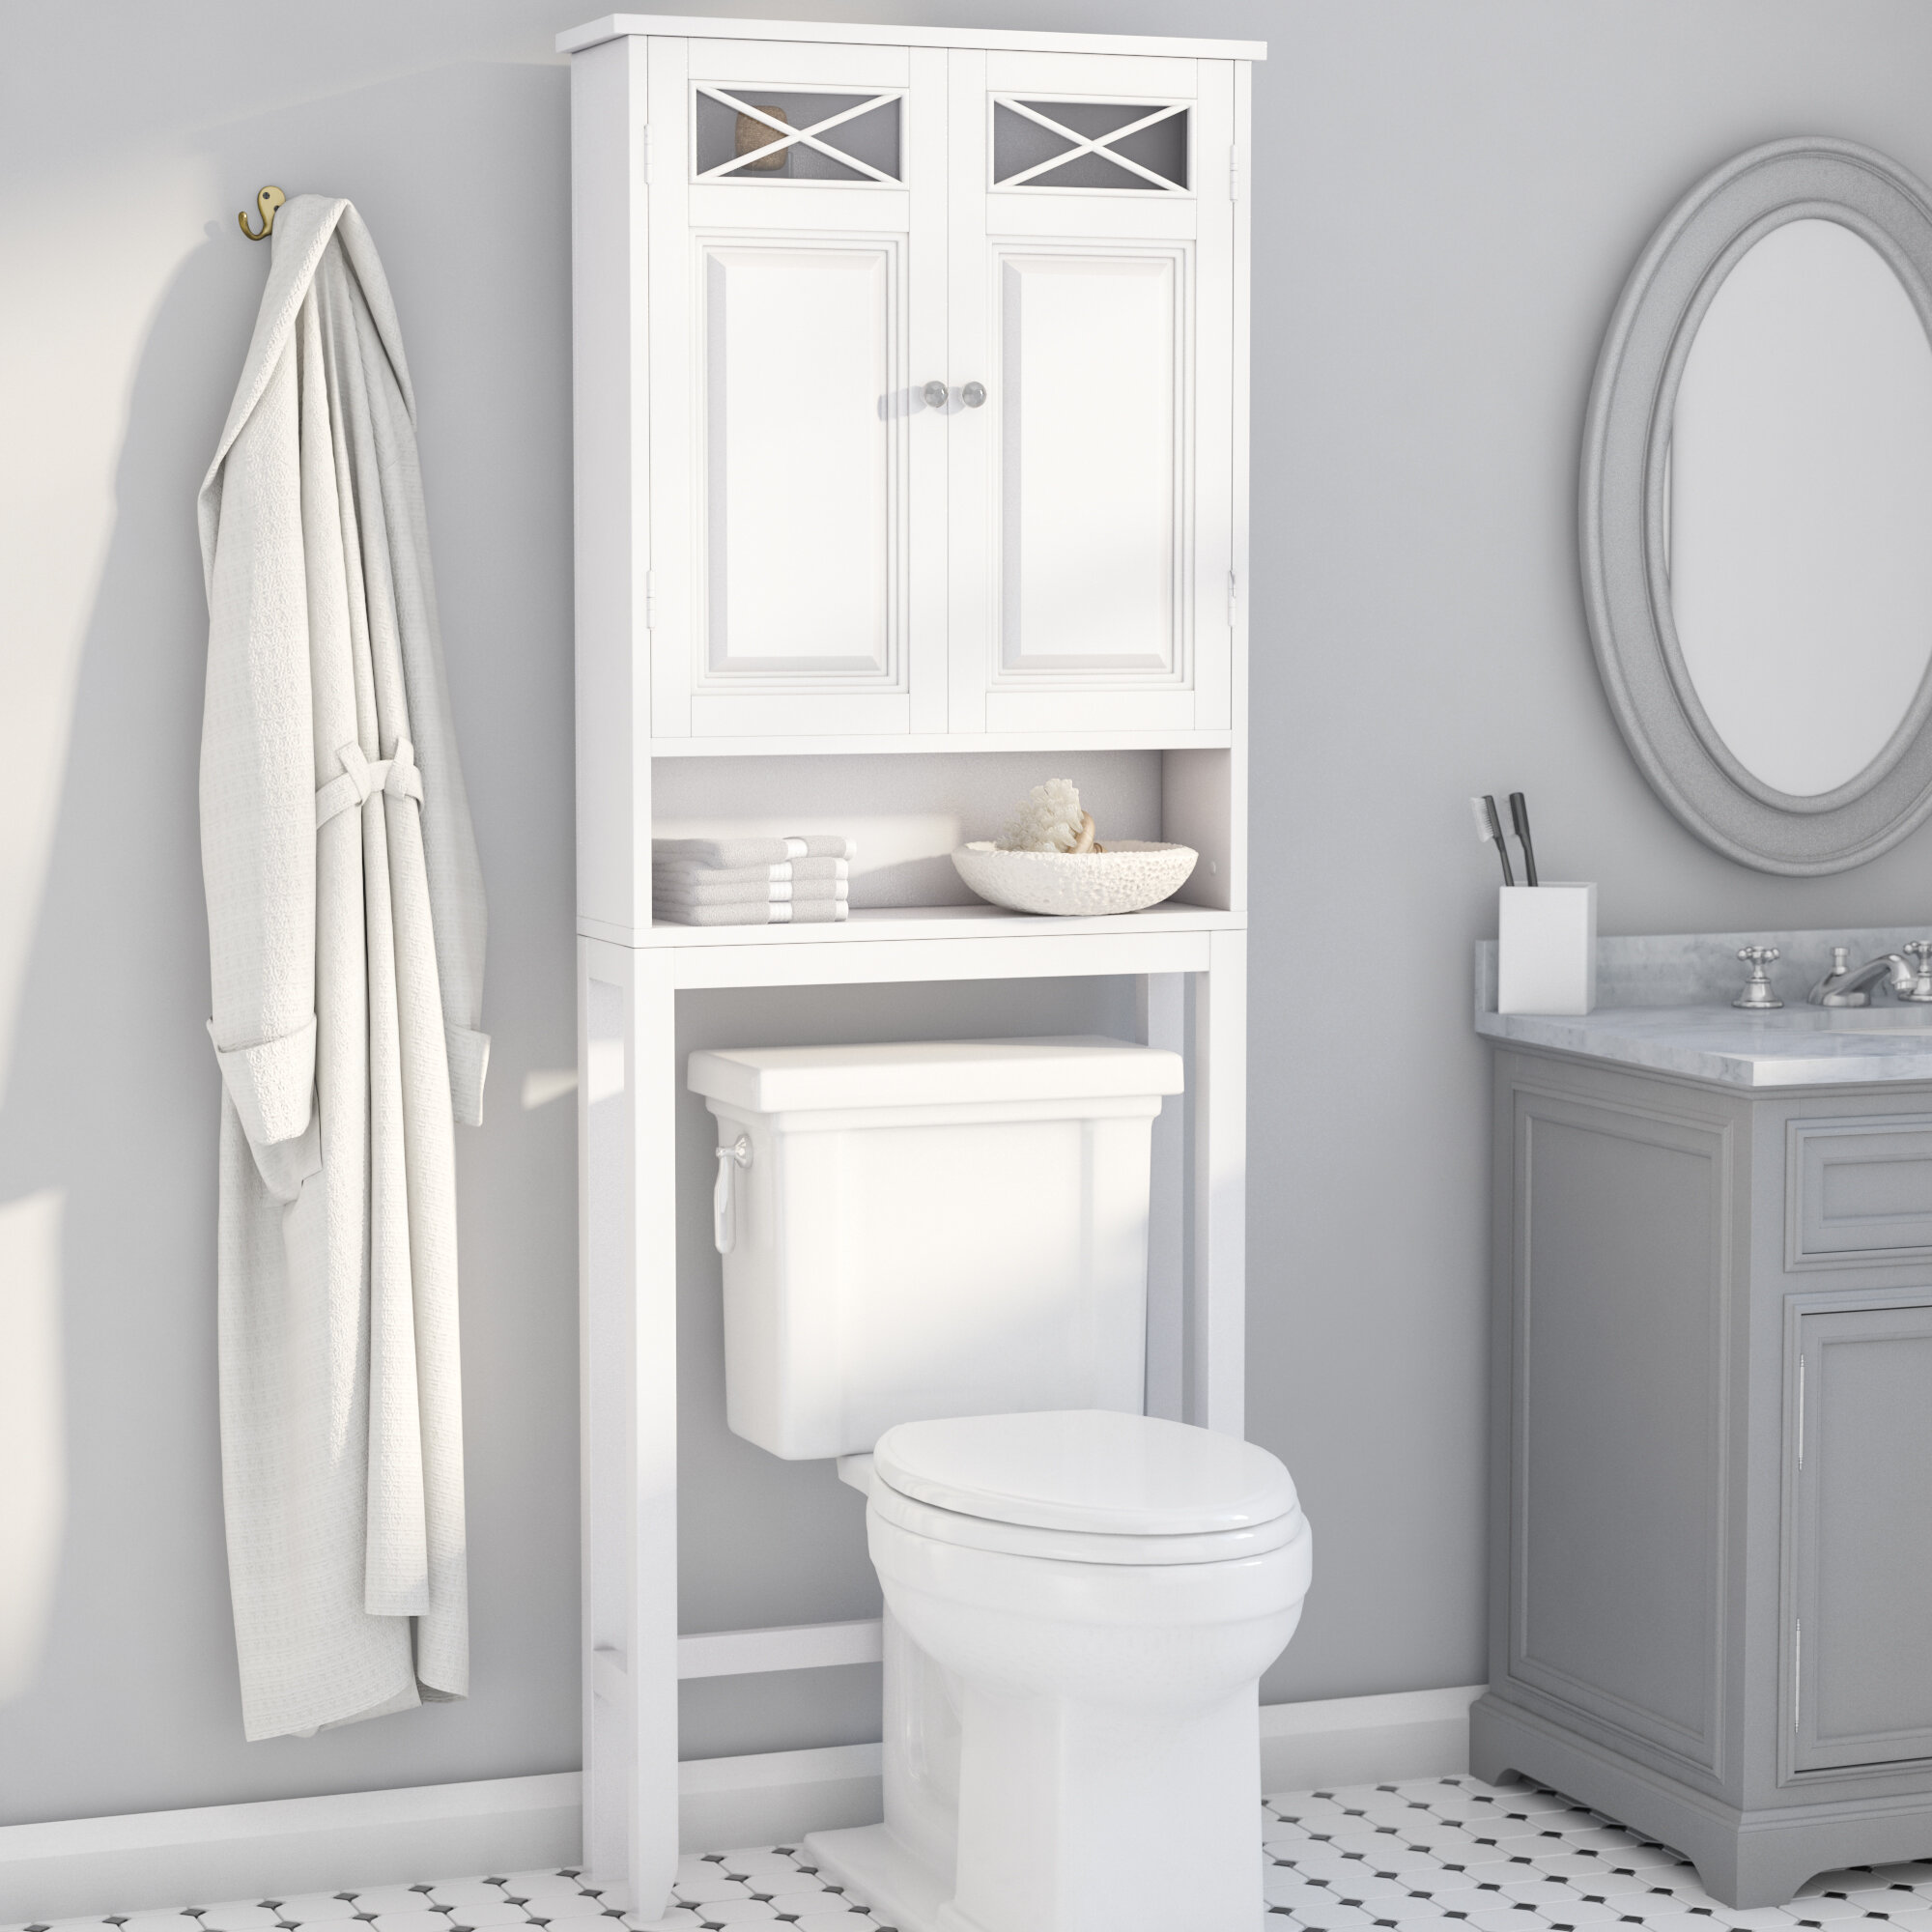 Super Over The Toilet Towel Storage Wayfair Home Interior And Landscaping Ologienasavecom